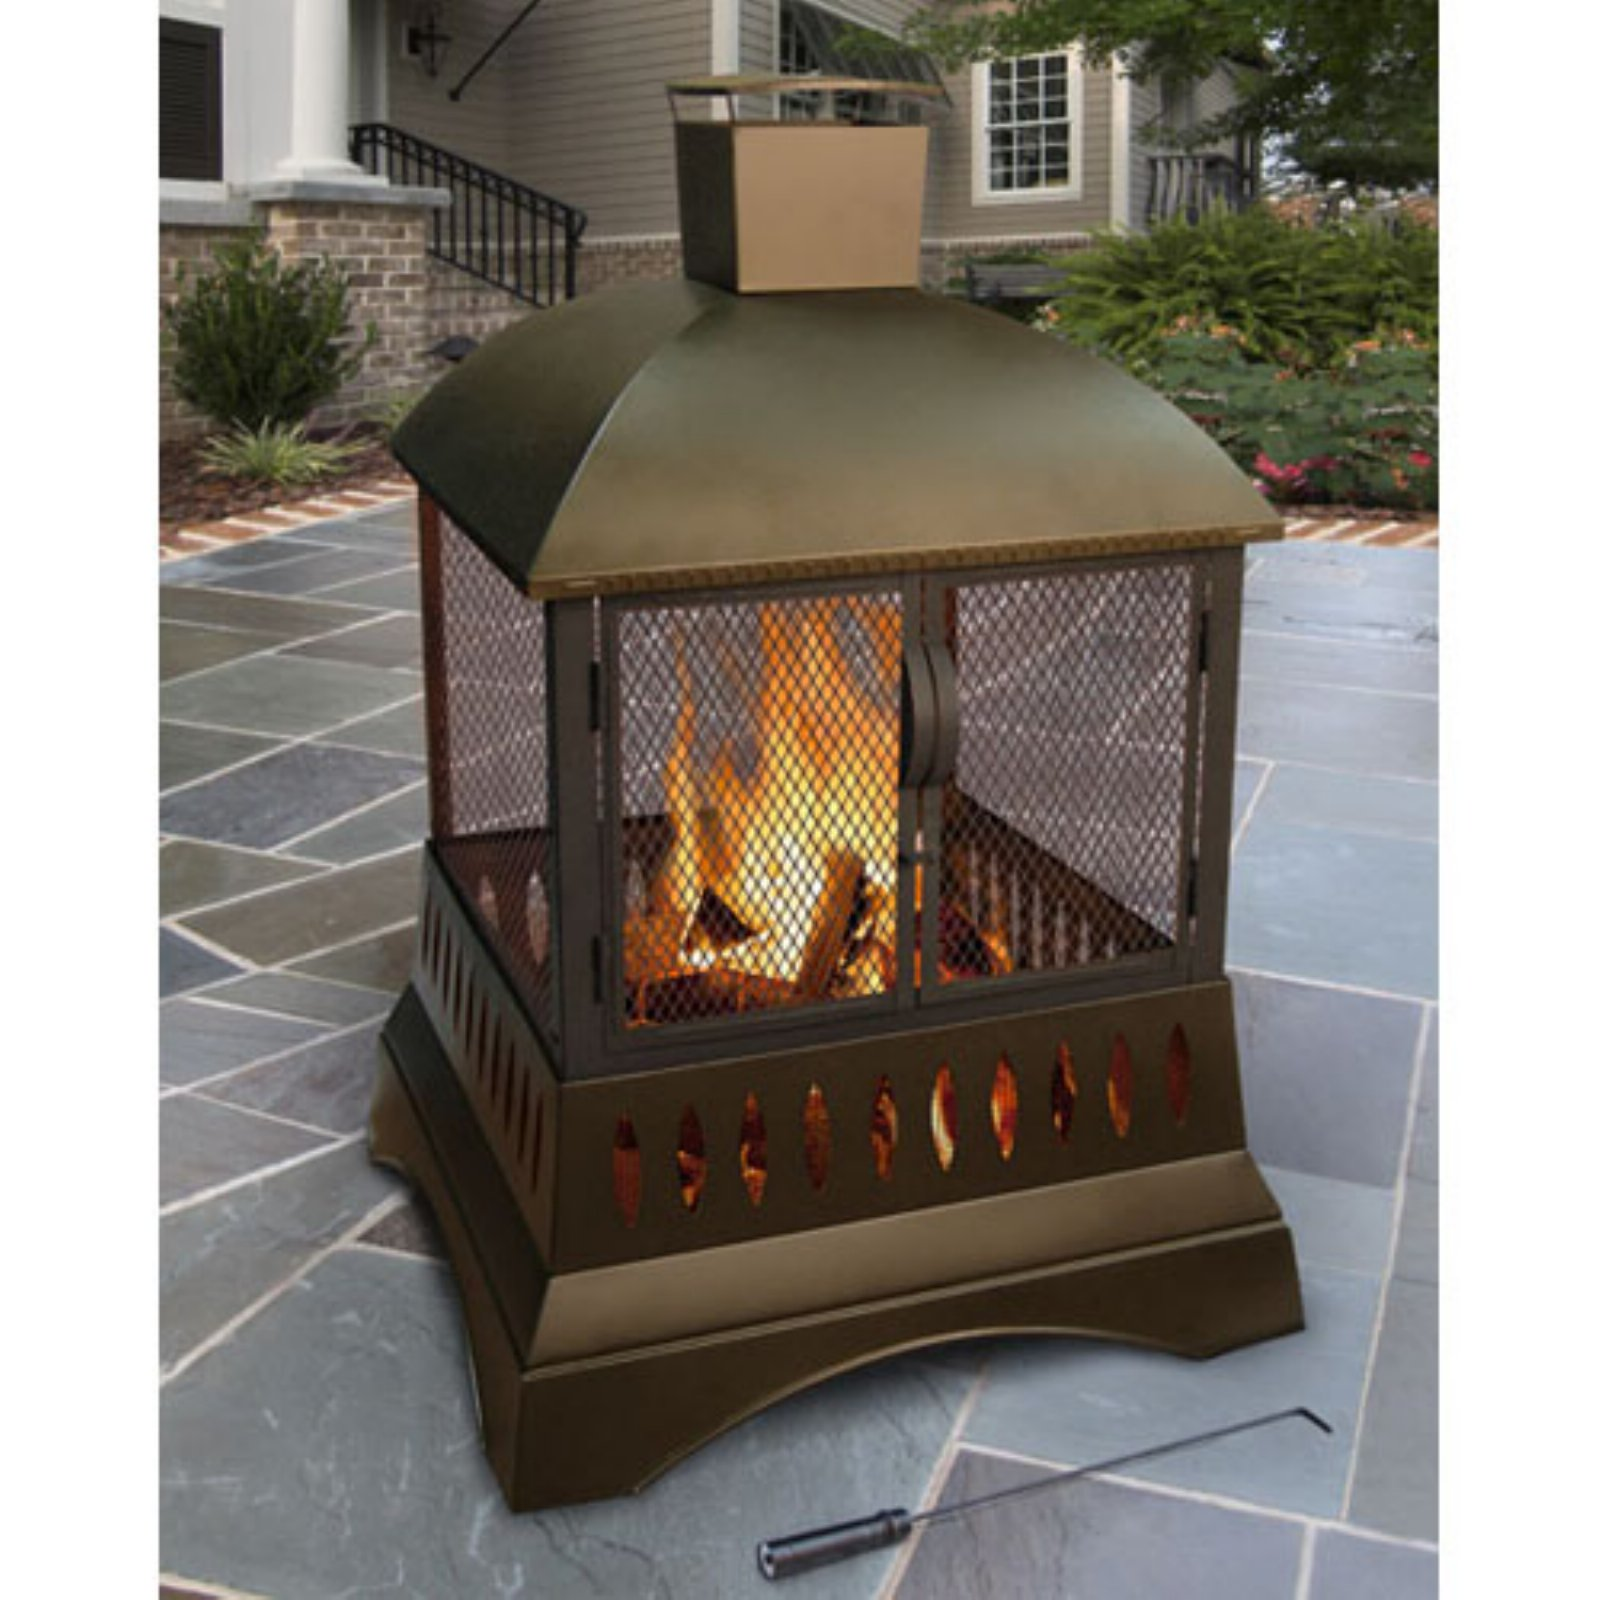 Landmann Grandezza Wood Burning Outdoor Fireplace